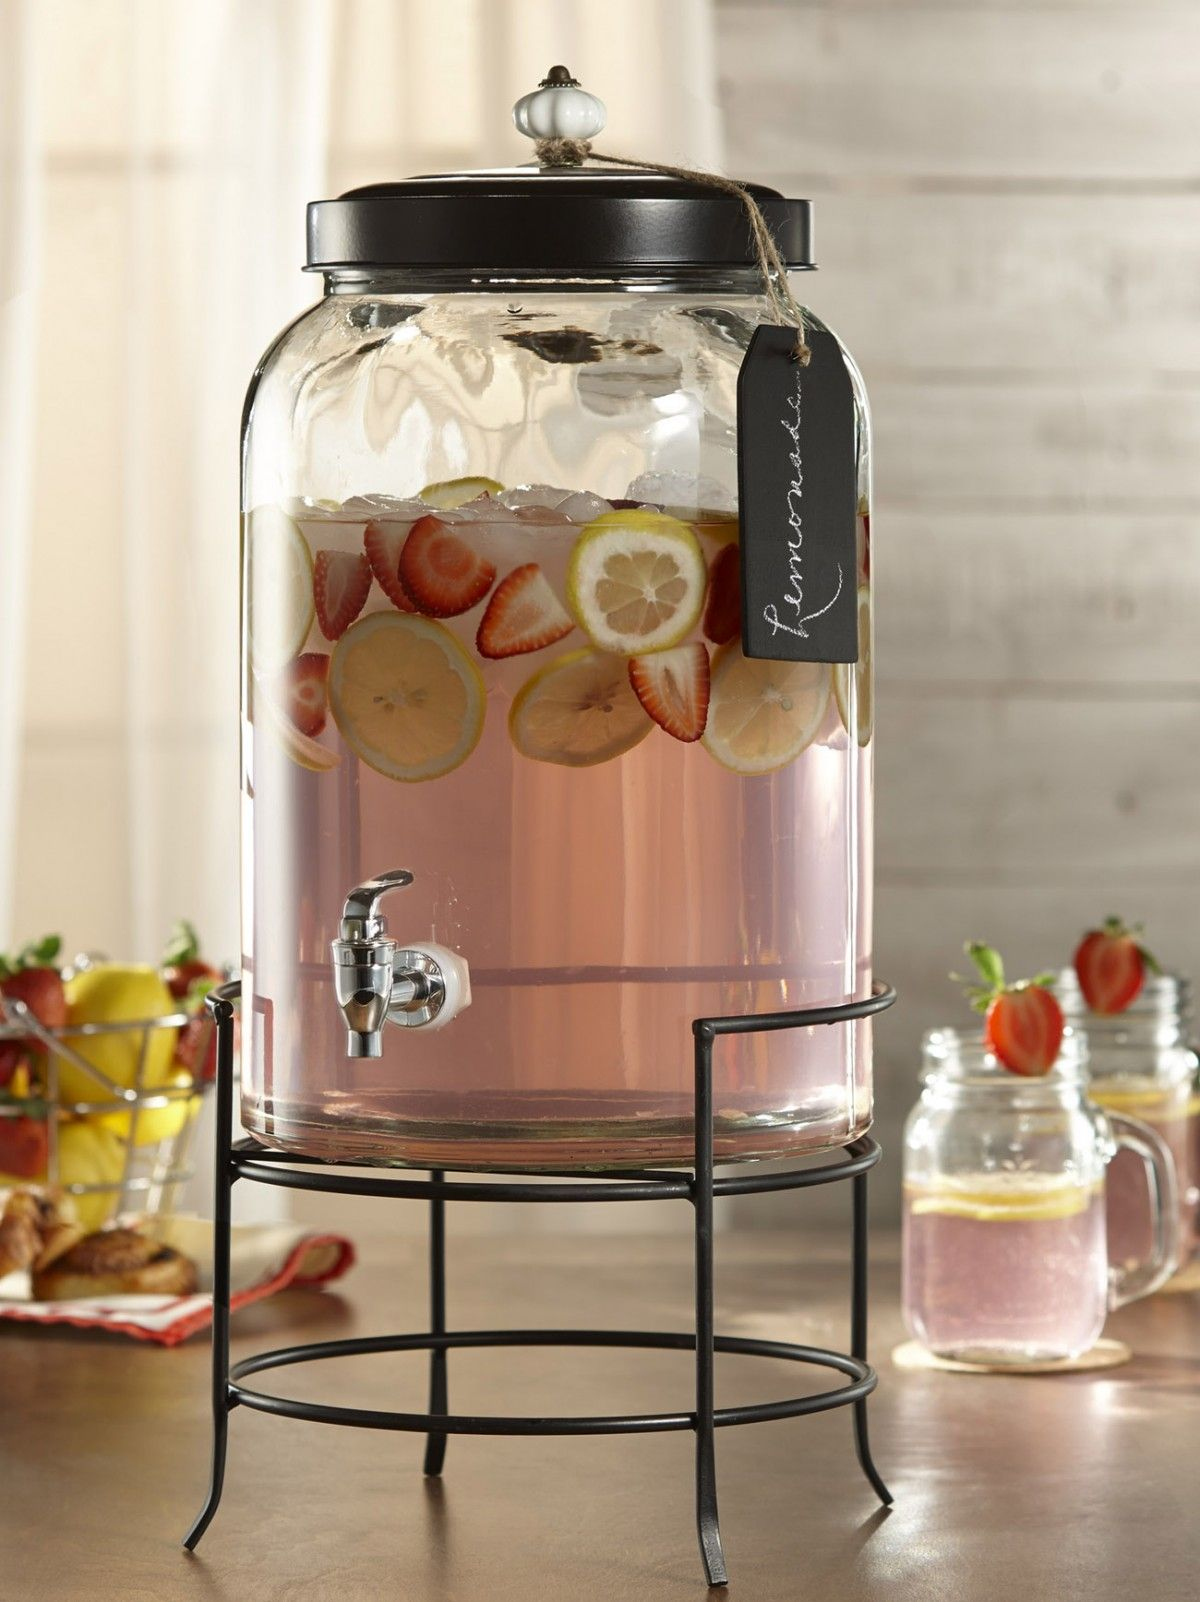 Thick Glass Double Beverage Dispenser With Spigots Lids On Metal Wire Stand Elegant Party Centerpiece 1 Gallon Each Drink Dispenser Wine Drinks Wine Barrel